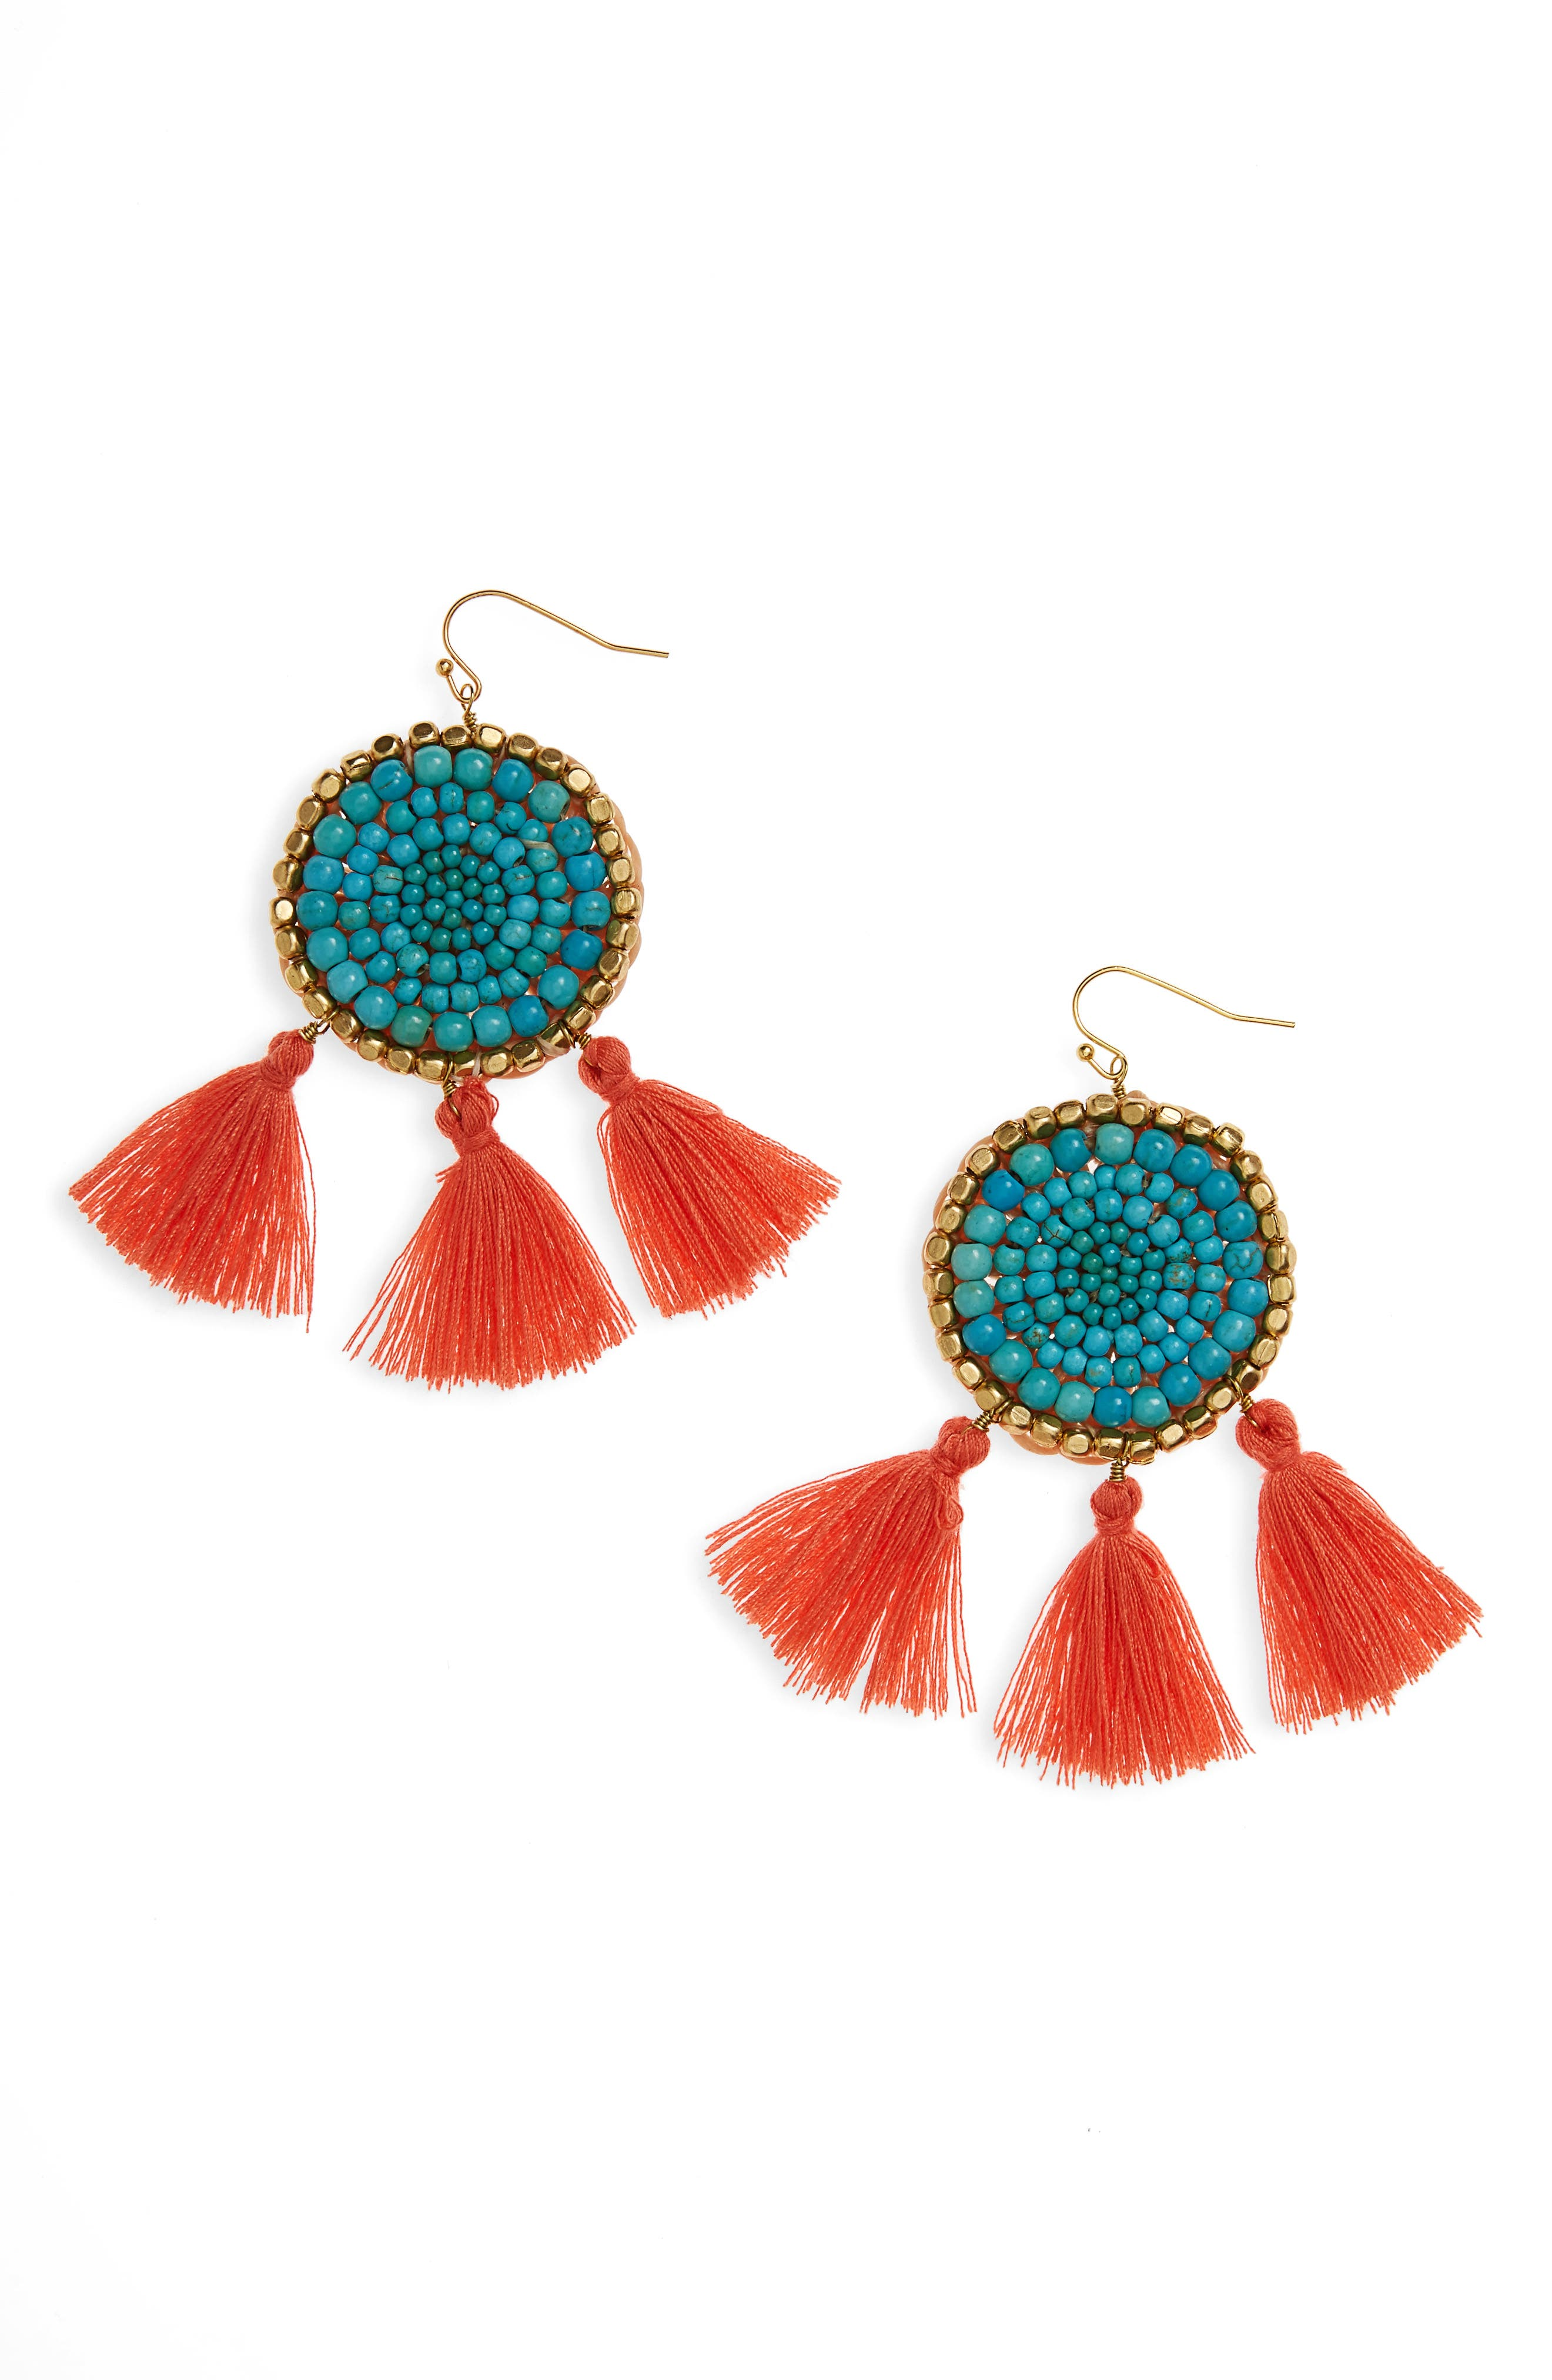 Panacea Howlite Medallion Tassel Earrings